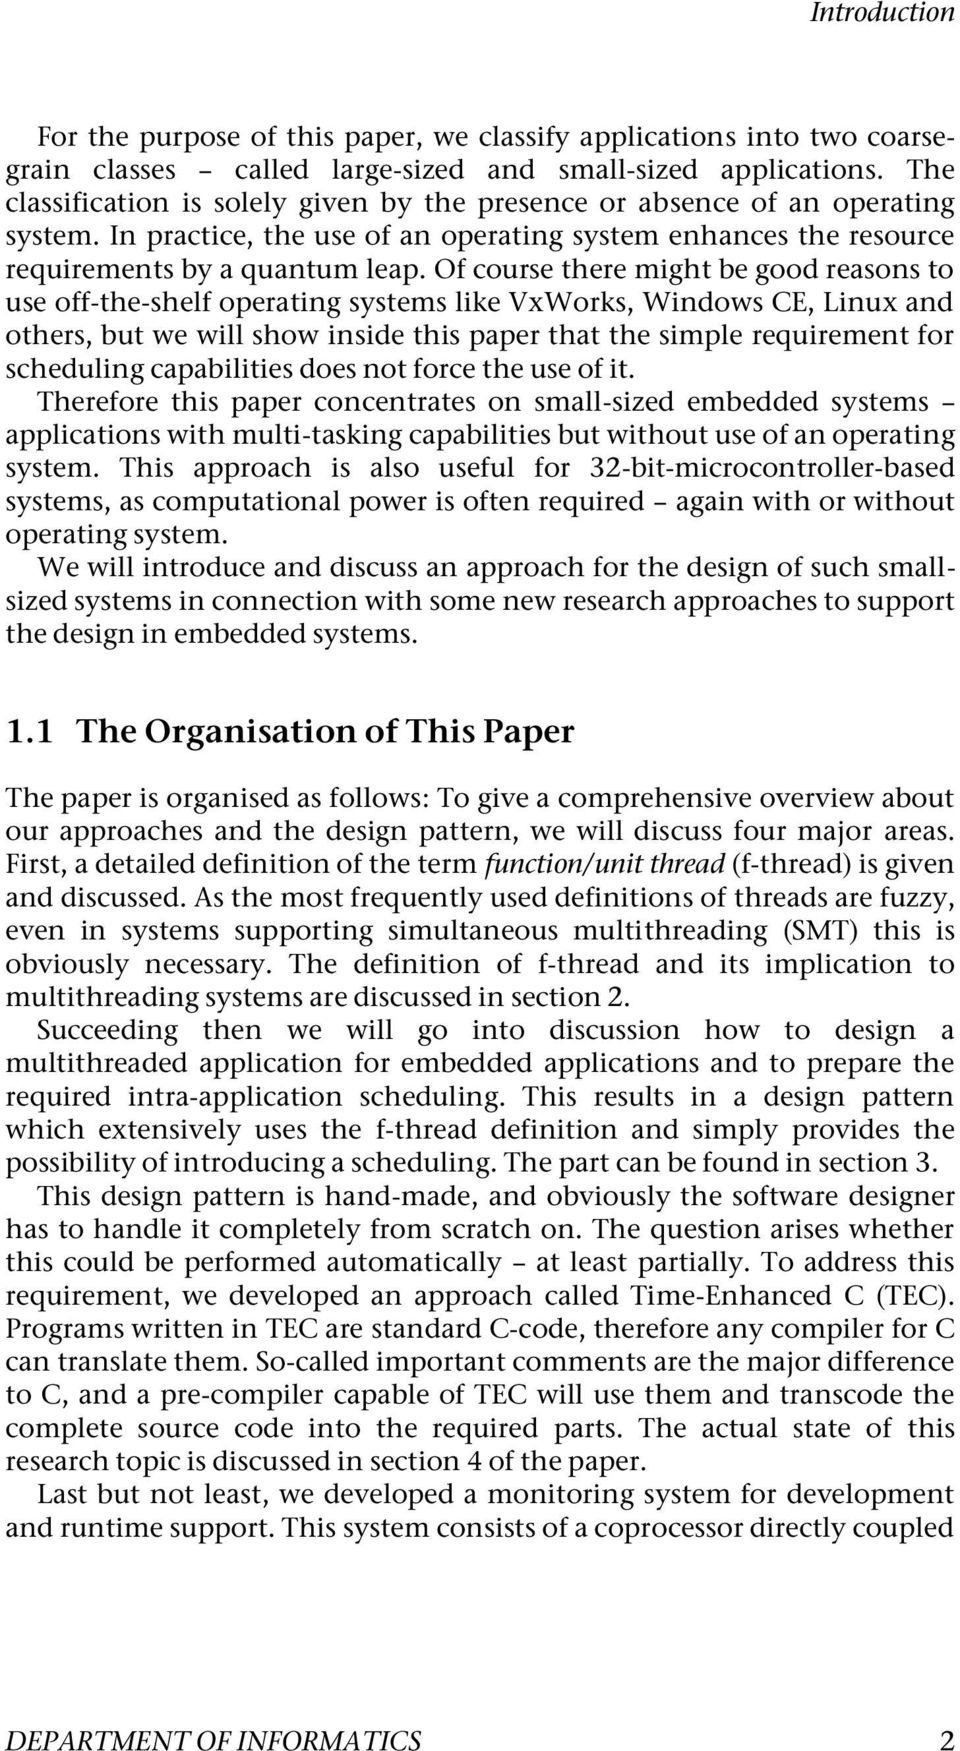 Of course there might be good reasons to use off-the-shelf operating systems like VxWorks, Windows CE, Linux and others, but we will show inside this paper that the simple requirement for scheduling